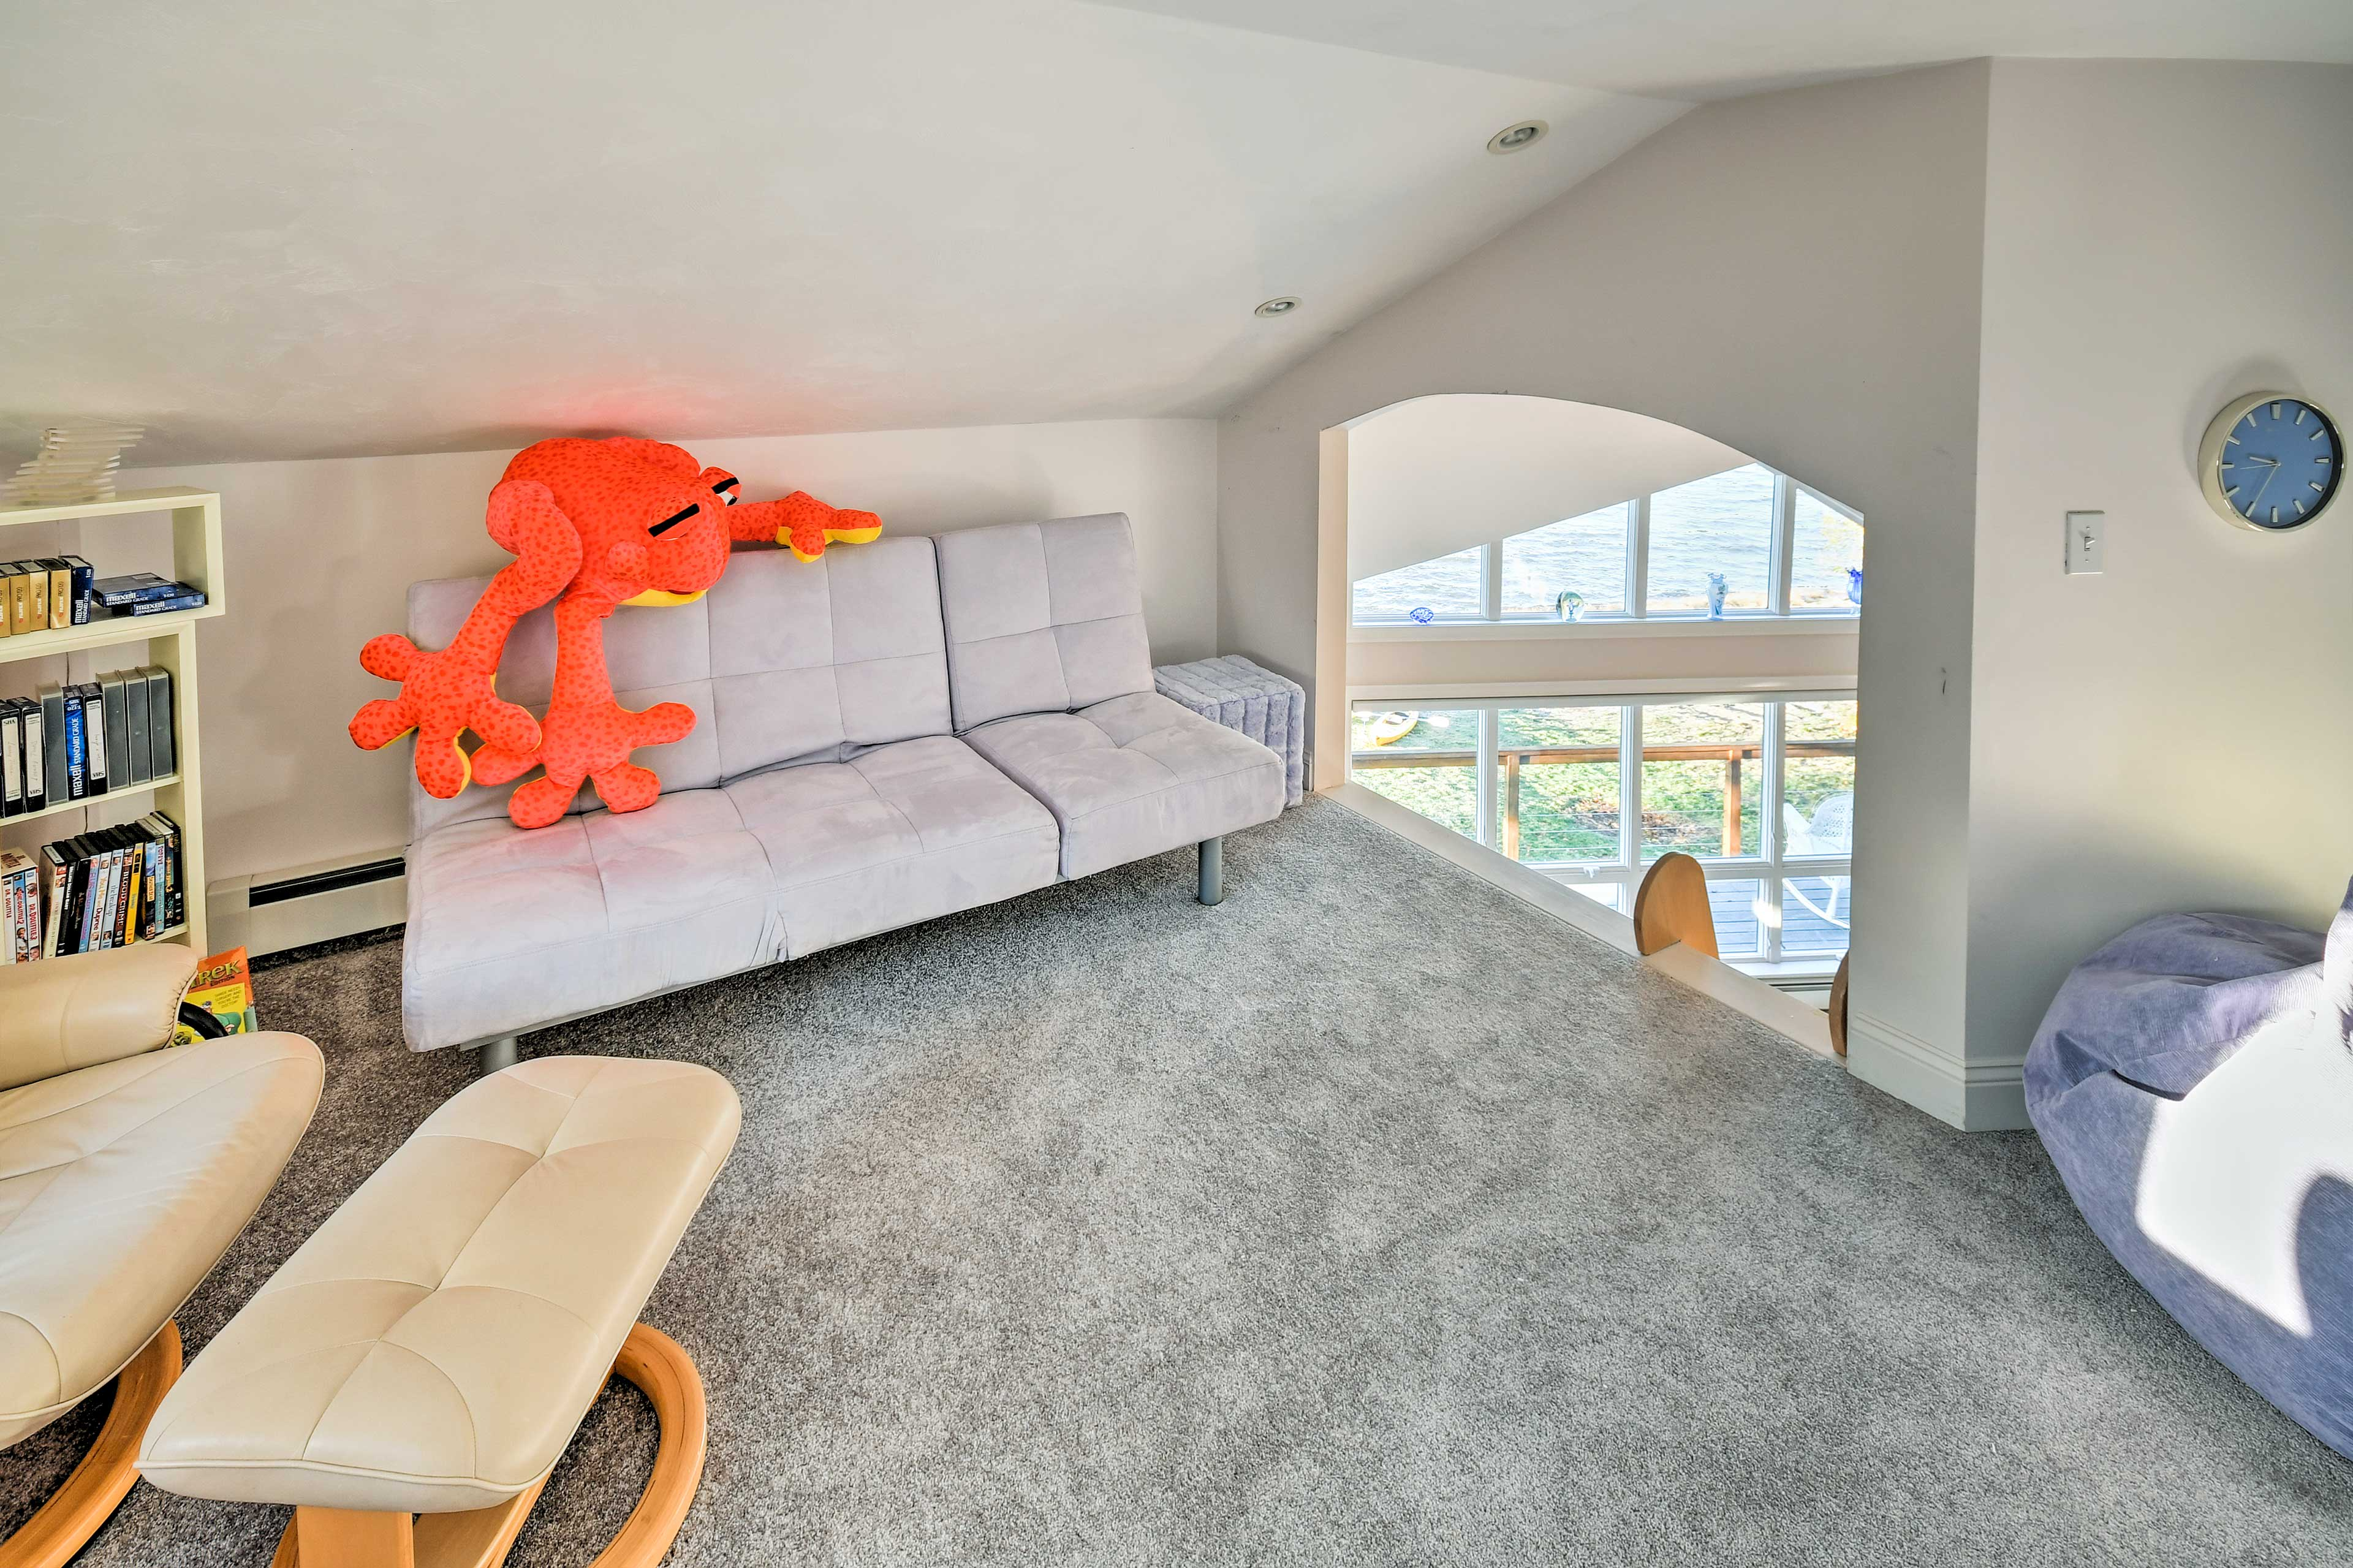 The loft features ample seating along with 2 futons.